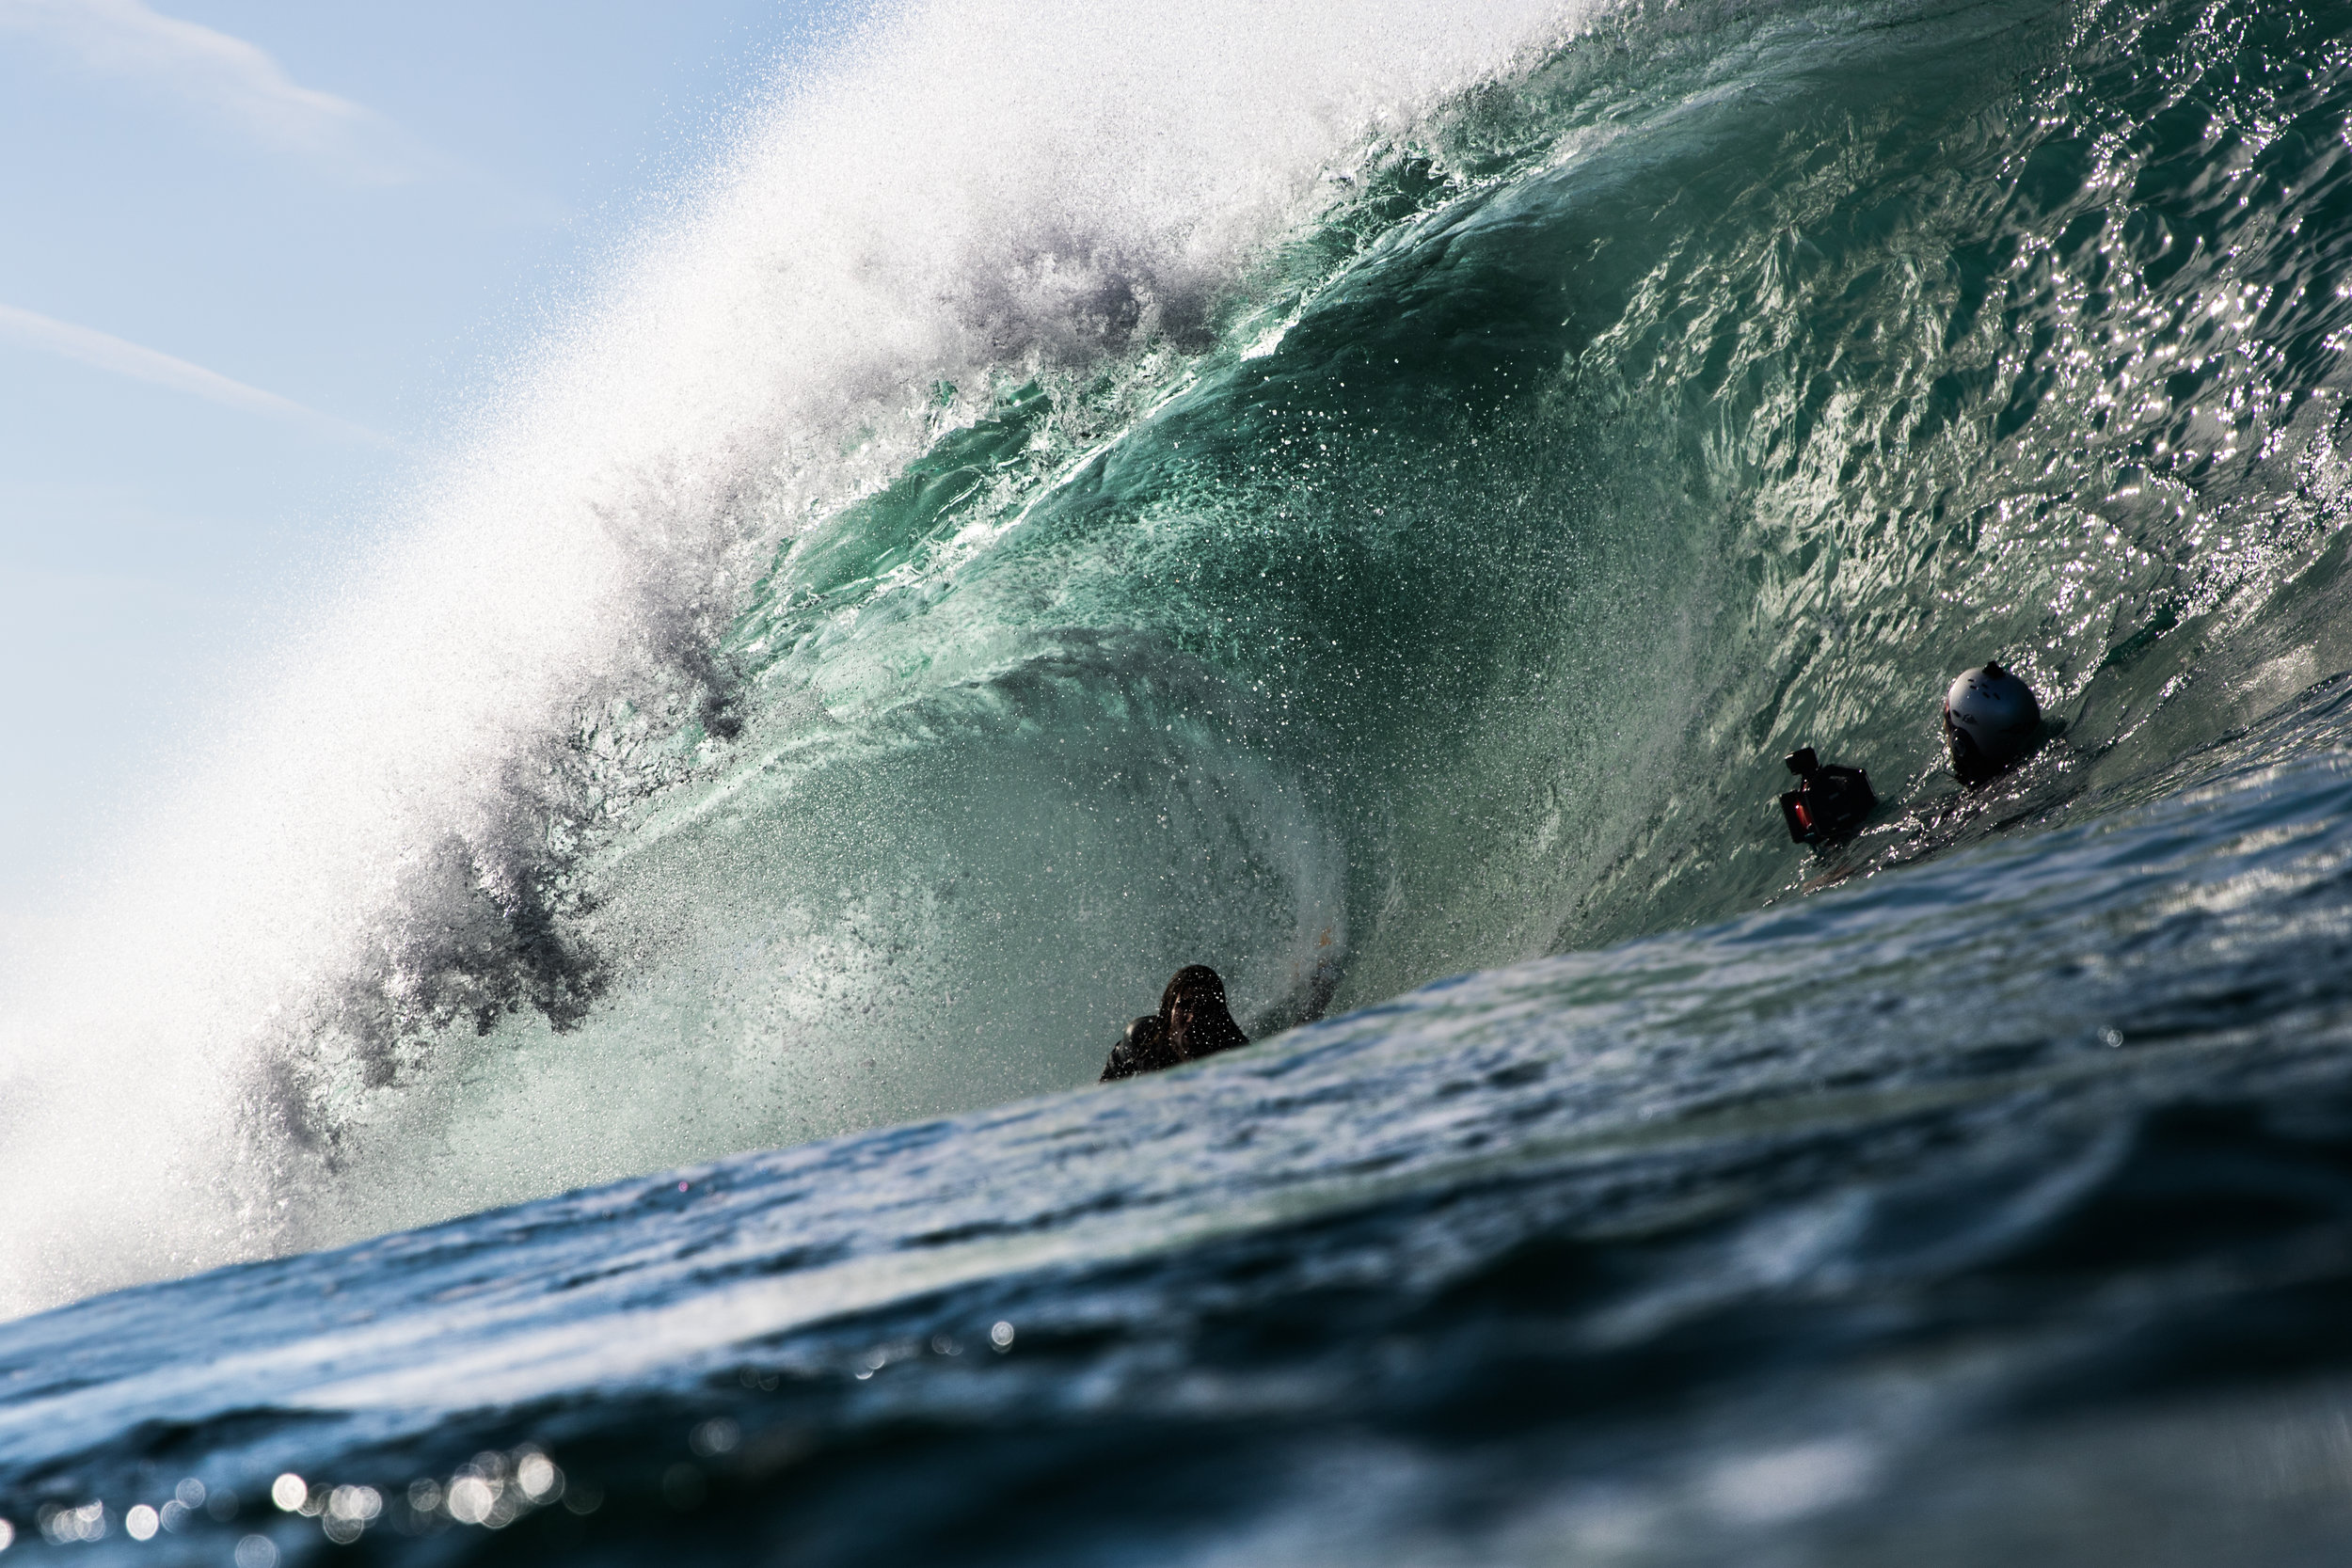 Michal catches Roy van Eijk (@roydebeuker) tucking into a gem of a barrel